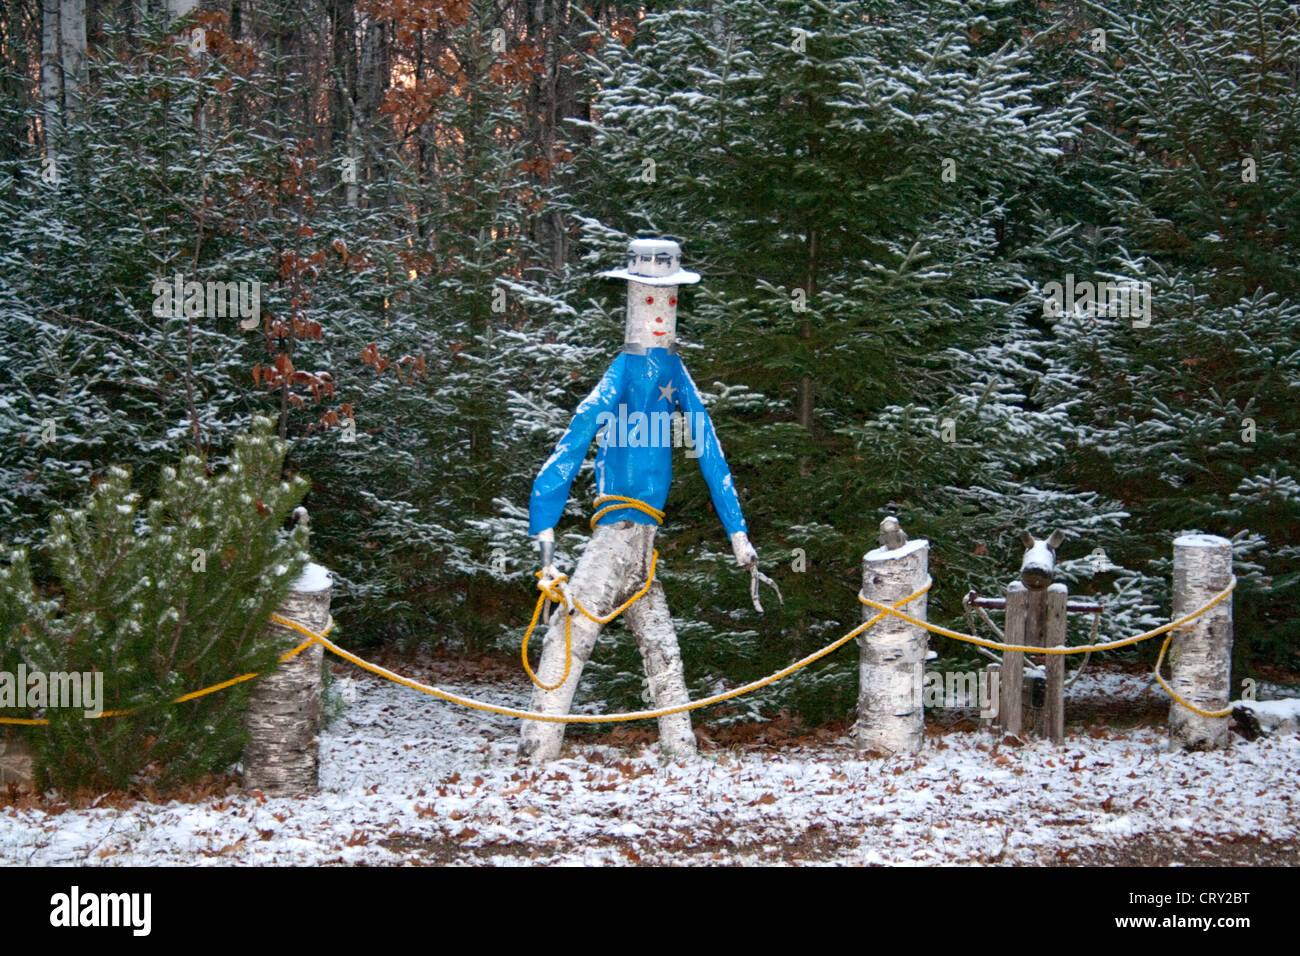 Outdoor snowy birch tree sculpture of cowboy carrying a lasso and wearing a star badge. Cable Wisconsin WI USA - Stock Image